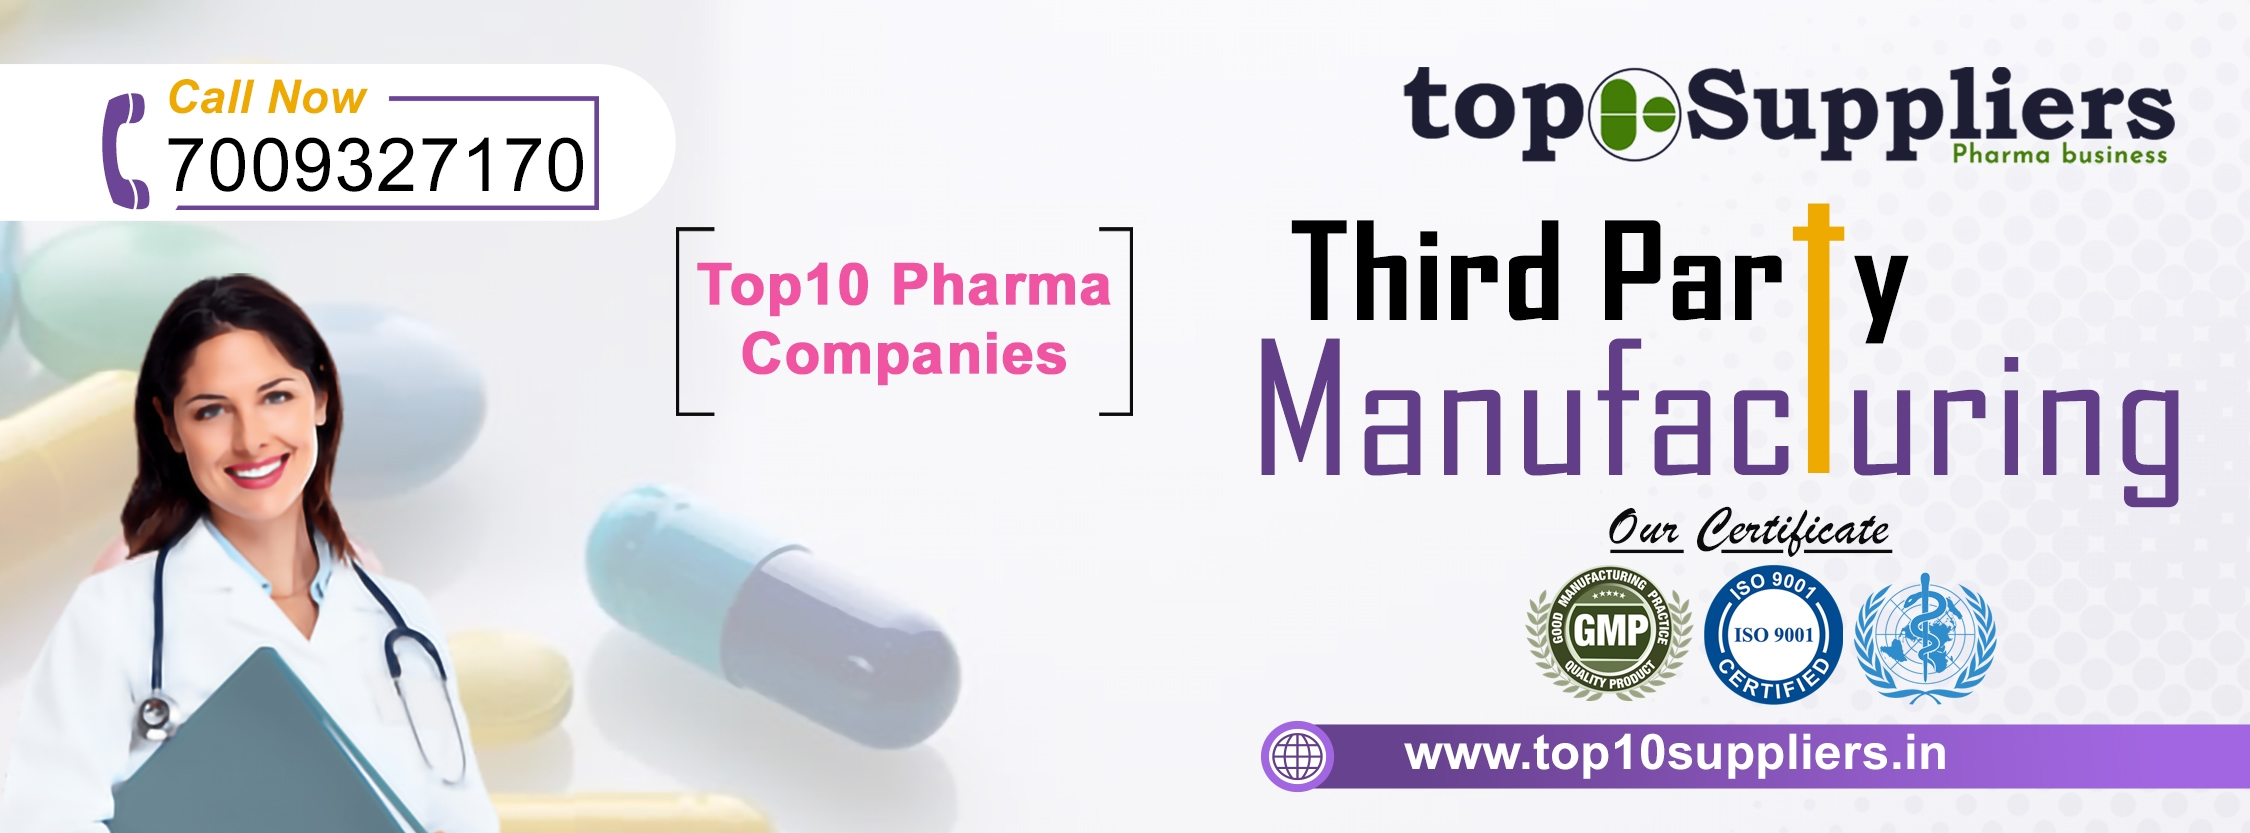 top10Suppliers (@top10suppliers01) Cover Image